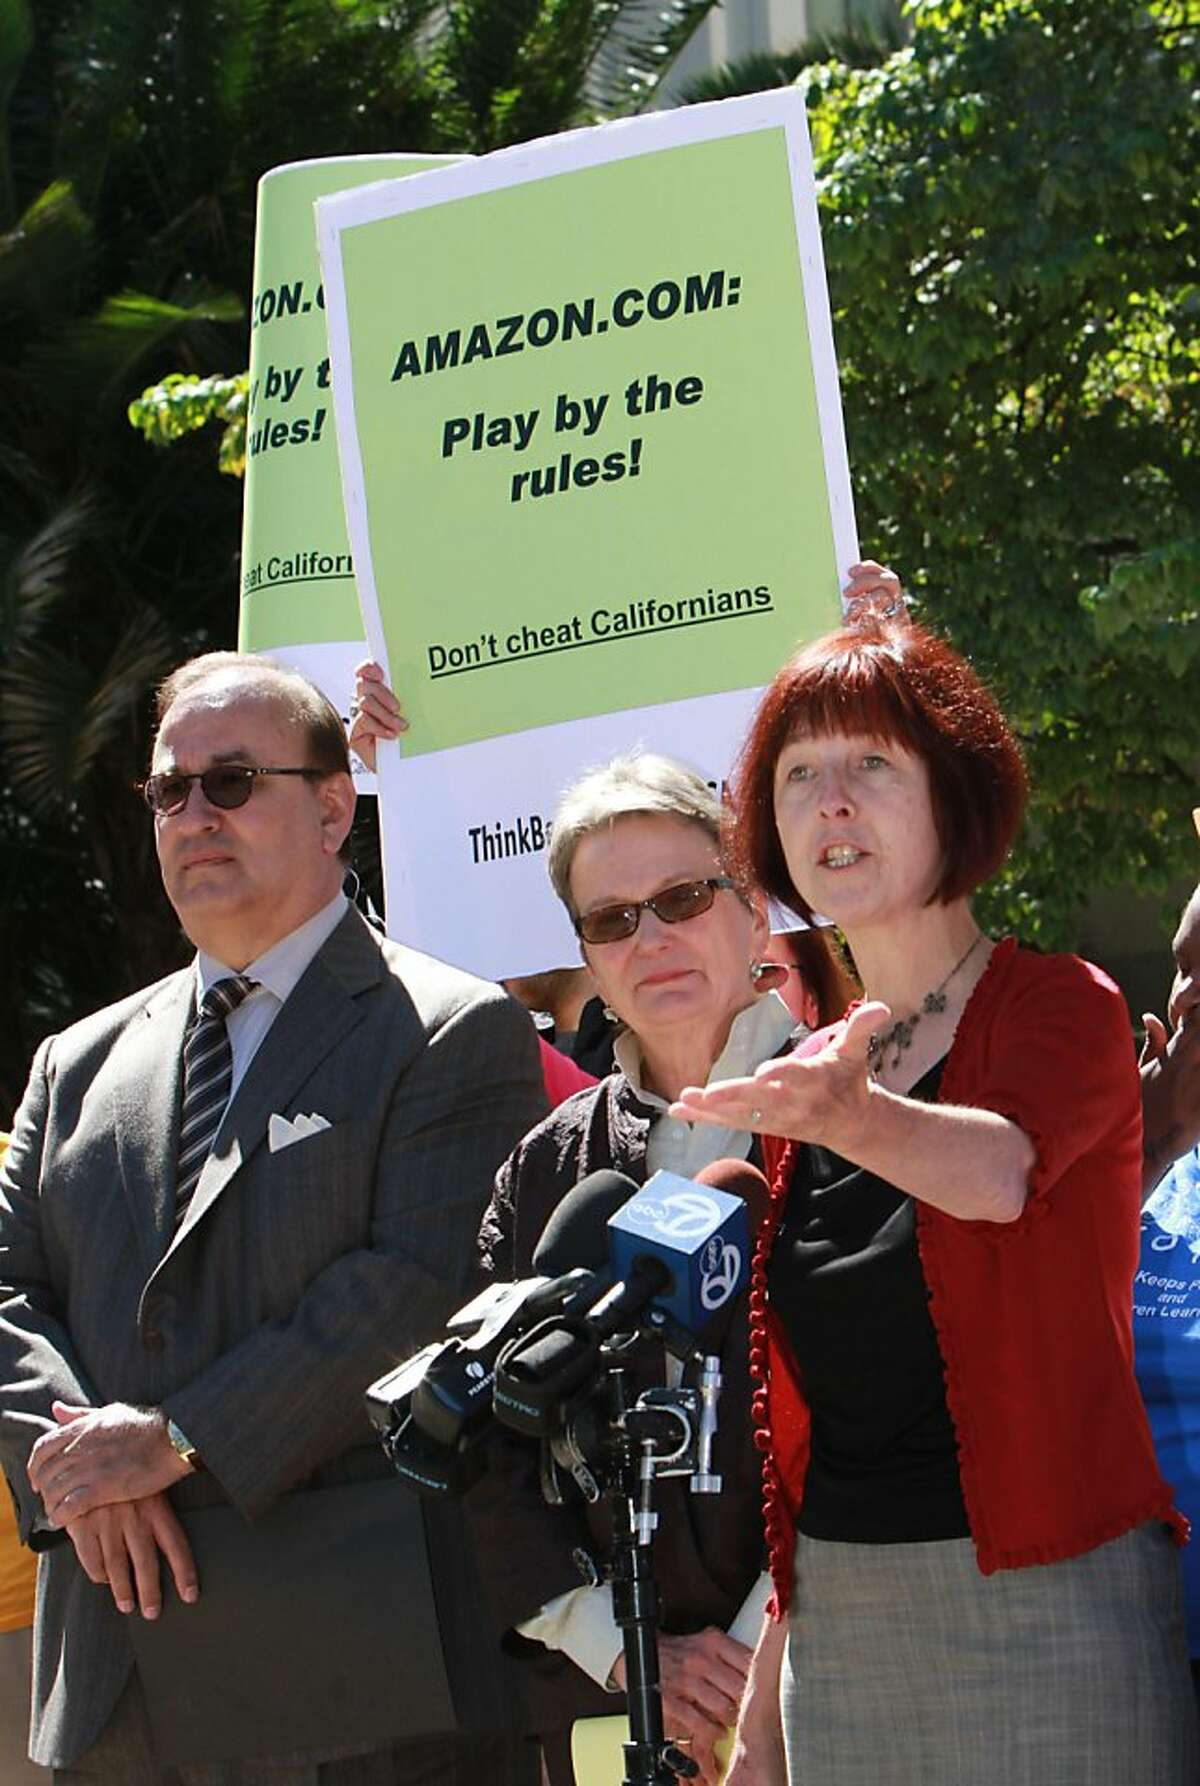 Assemblywoman Nancy Skinner, D-Berkeley, right called on clients of internet giant Amazon.com to cancel their accounts unless it stops resisting a new California law that requires more online retailers to collect state sales tax, during a news conference at the Capitol in Sacramento, Calif. Skinner, who authored the internet sales tax measure, was accompanied by Assemblyman Charles Calderon, D-Whittier, left, and state Sen. Loni Hancock, D-Berekeley, in calling on Amazon to stop its effort to repeal the law through a ballot referendum next year. (AP Photo/Rich Pedroncelli)